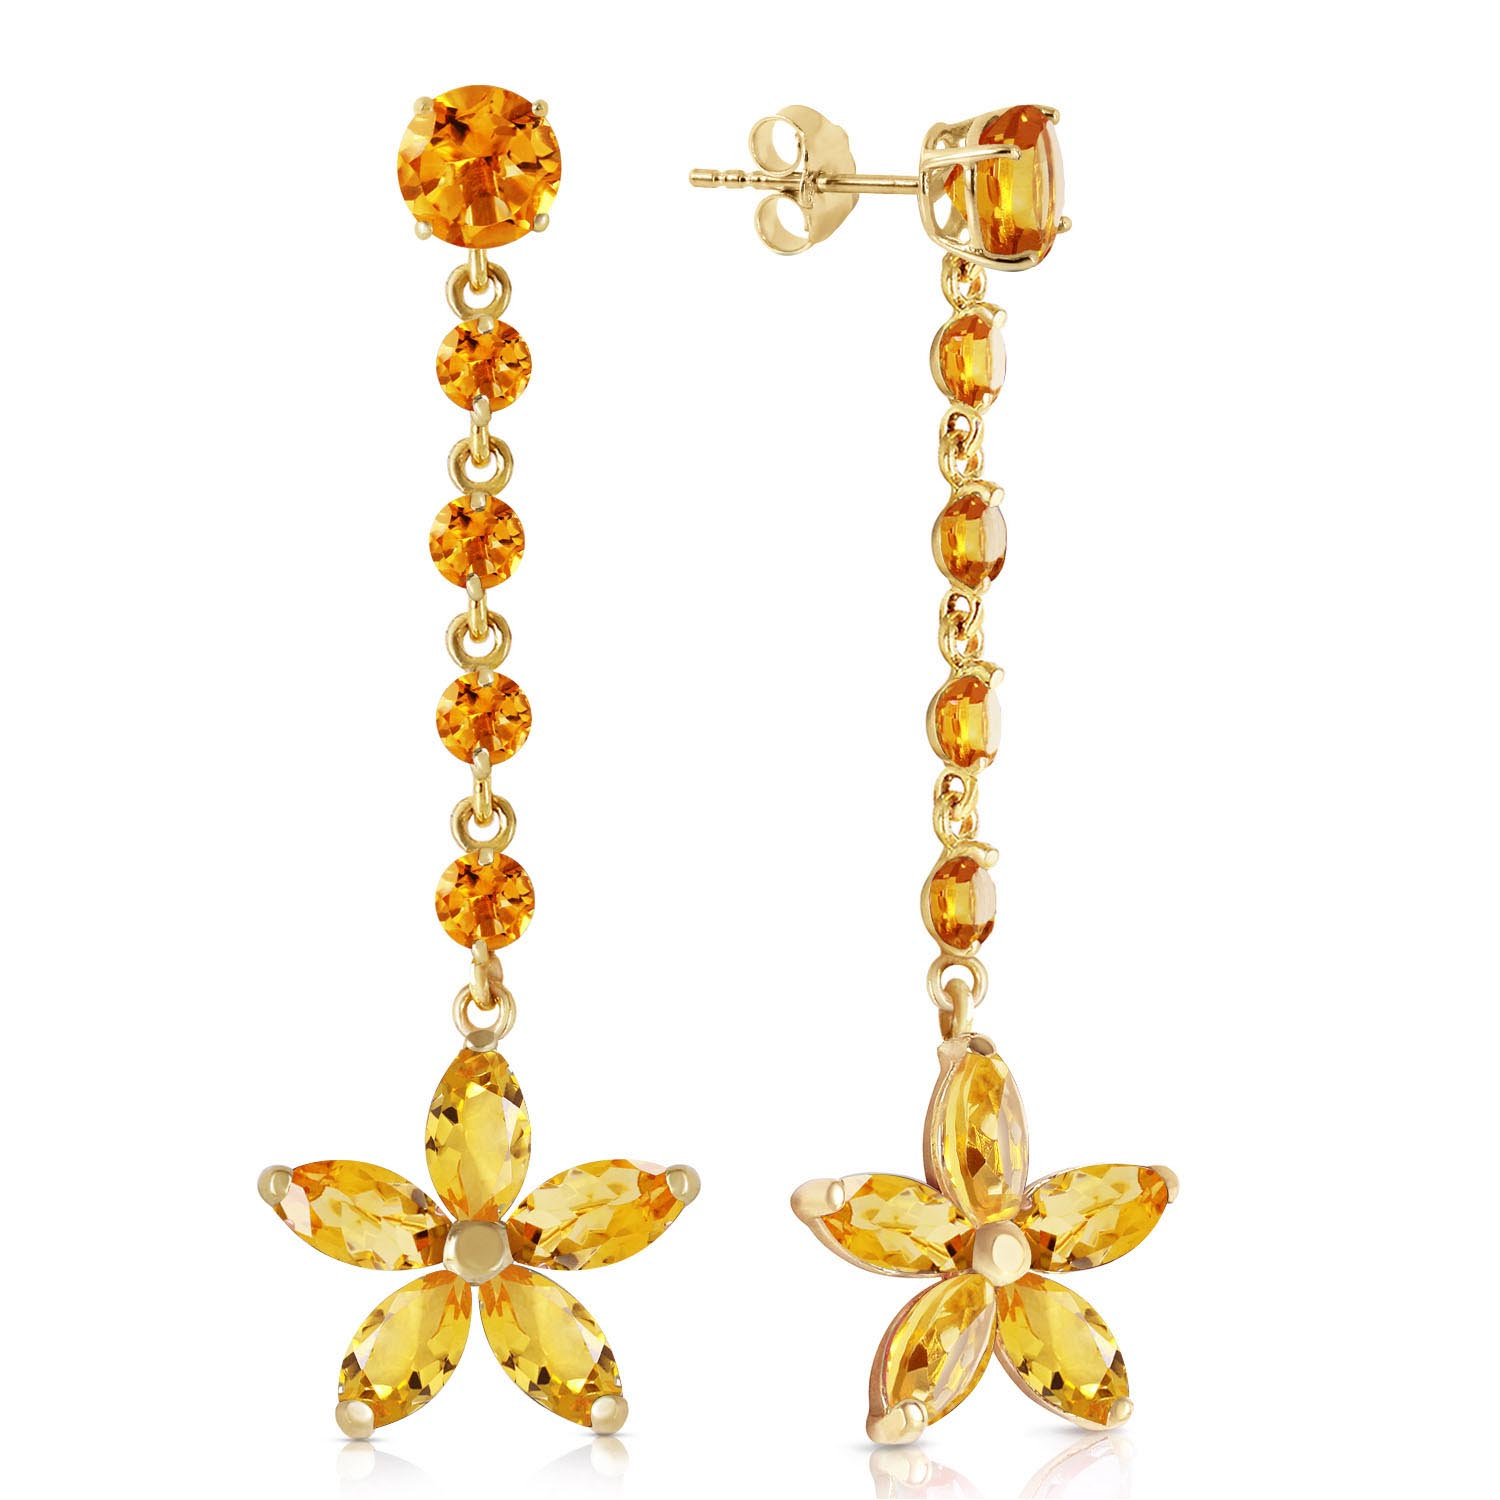 Citrine Daisy Chain Drop Earrings 4.8ctw in 9ct Gold